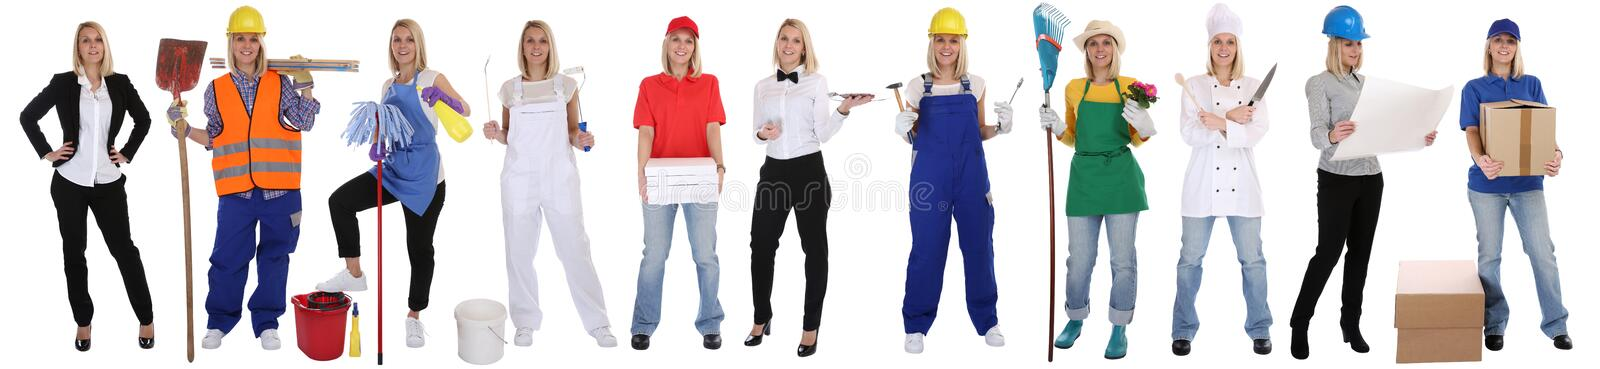 Group of workers professions women business standing occupation. Group of workers professions woman business standing occupation career isolated on a white stock images